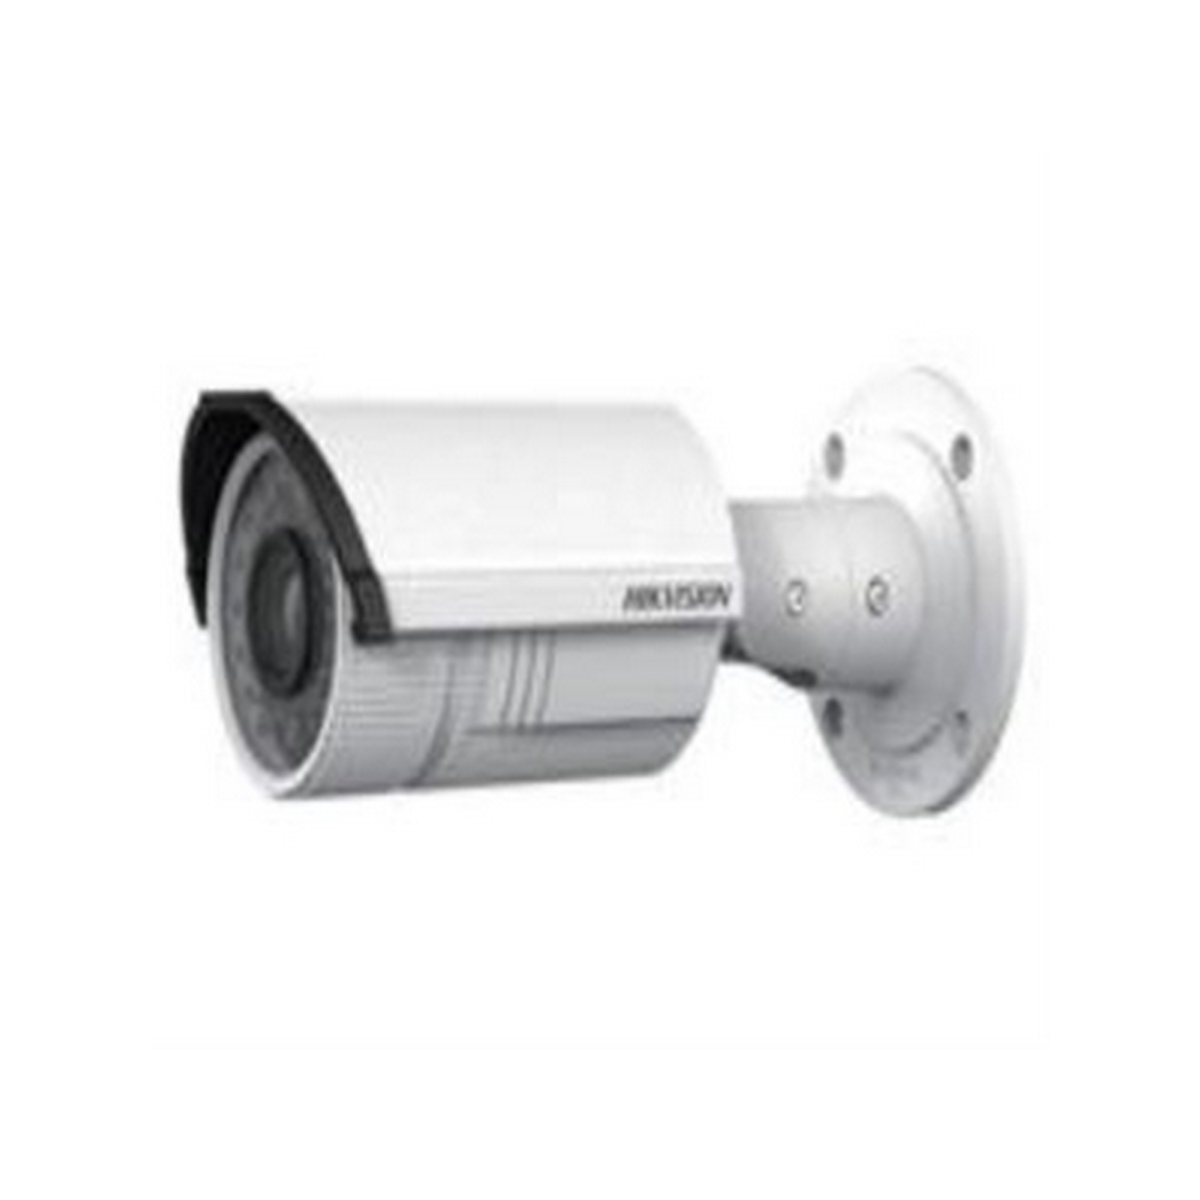 DS-2CD2622FWD-IZS HIKVISION 2MP OUTDOOR BULLET WDR 2.8-12M MOTORIZED ZOOM DAY/NIGHT